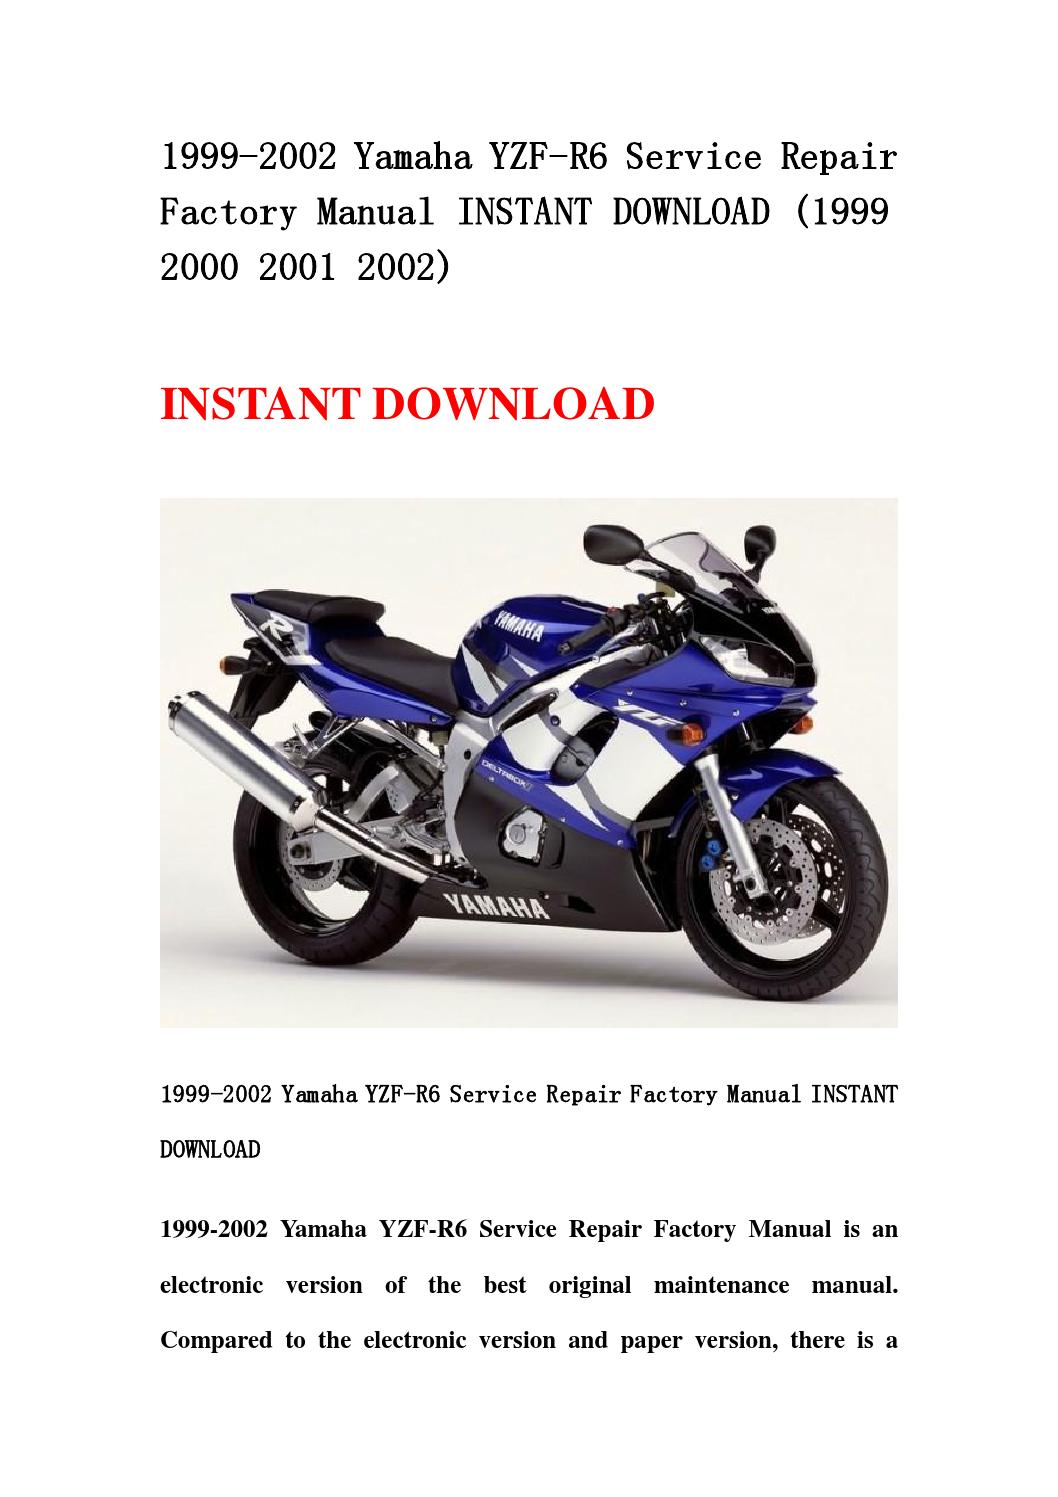 1999 2002 yamaha yzf r6 service repair factory manual